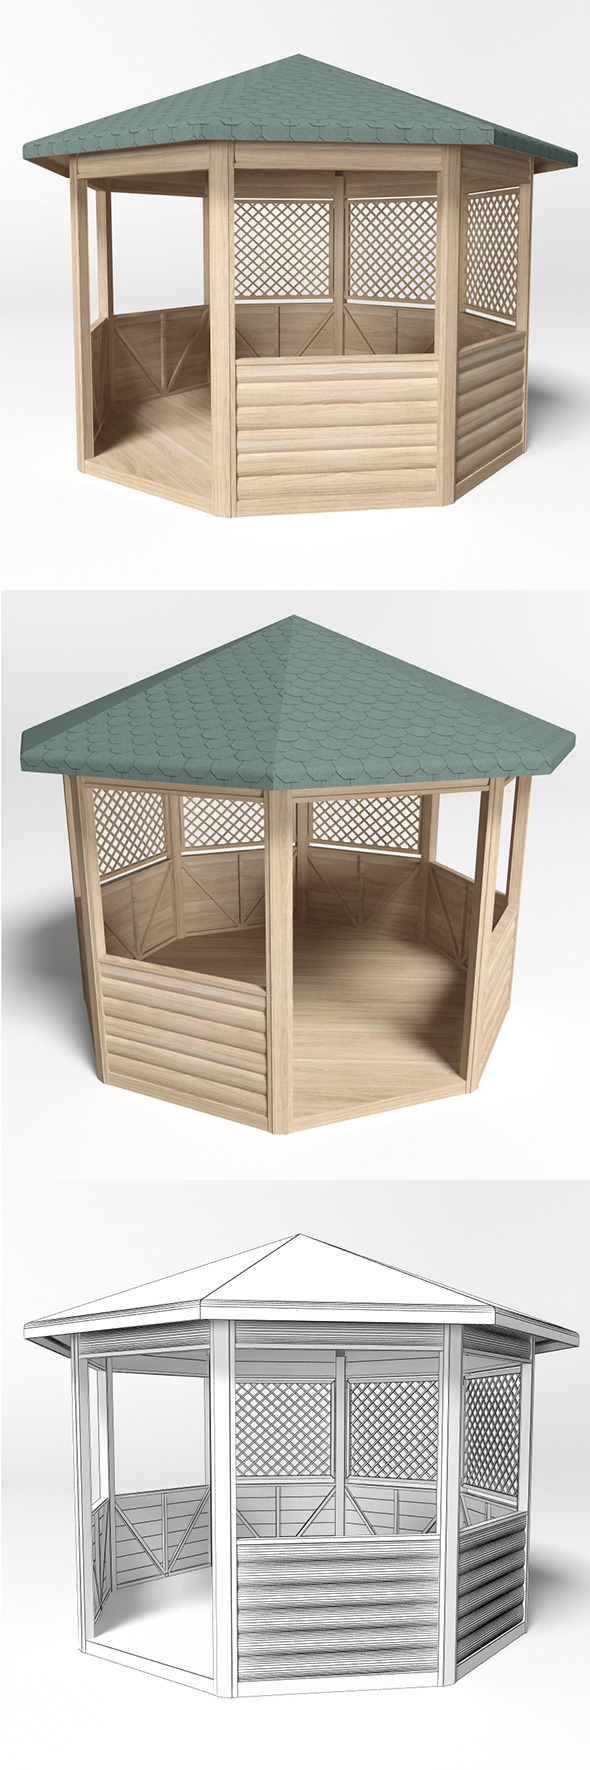 Gazebo 4 - 3DOcean Item for Sale